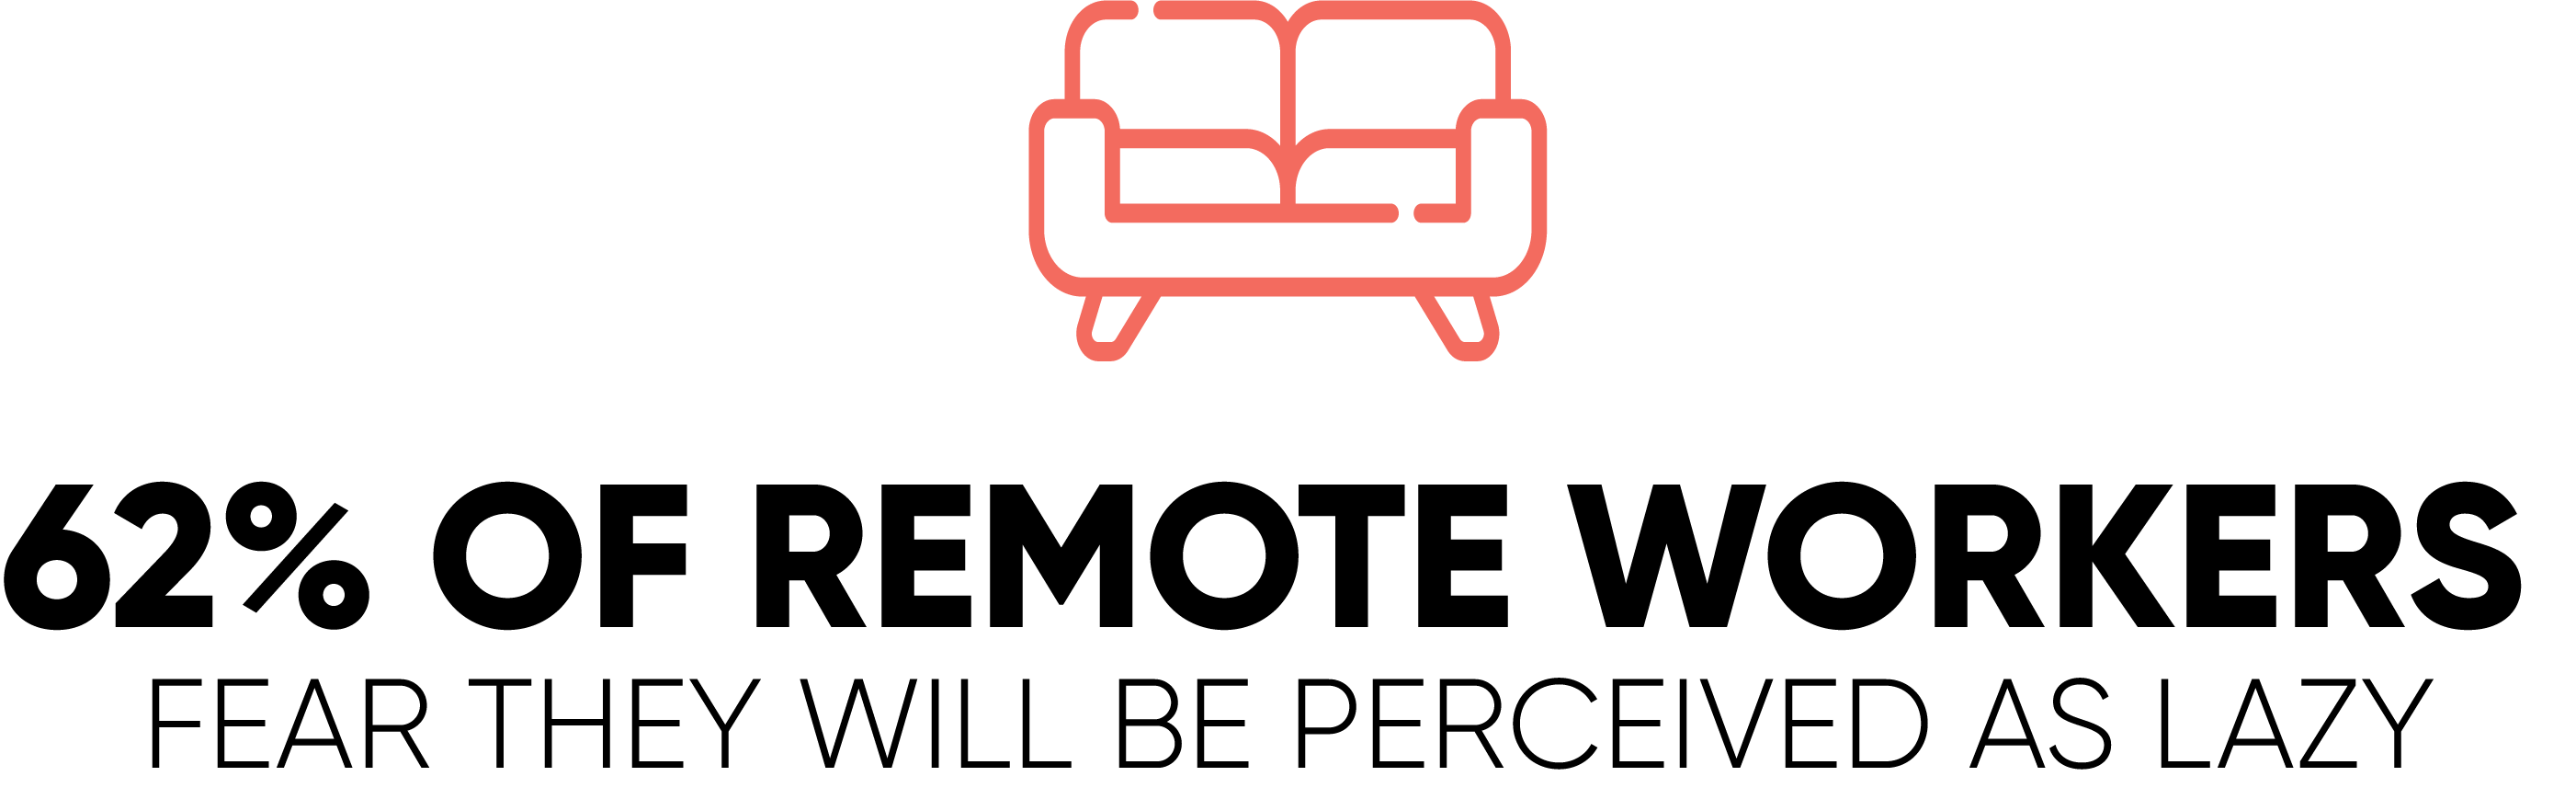 62% of Remote Workers Fear They Will Be Perceived as Lazy